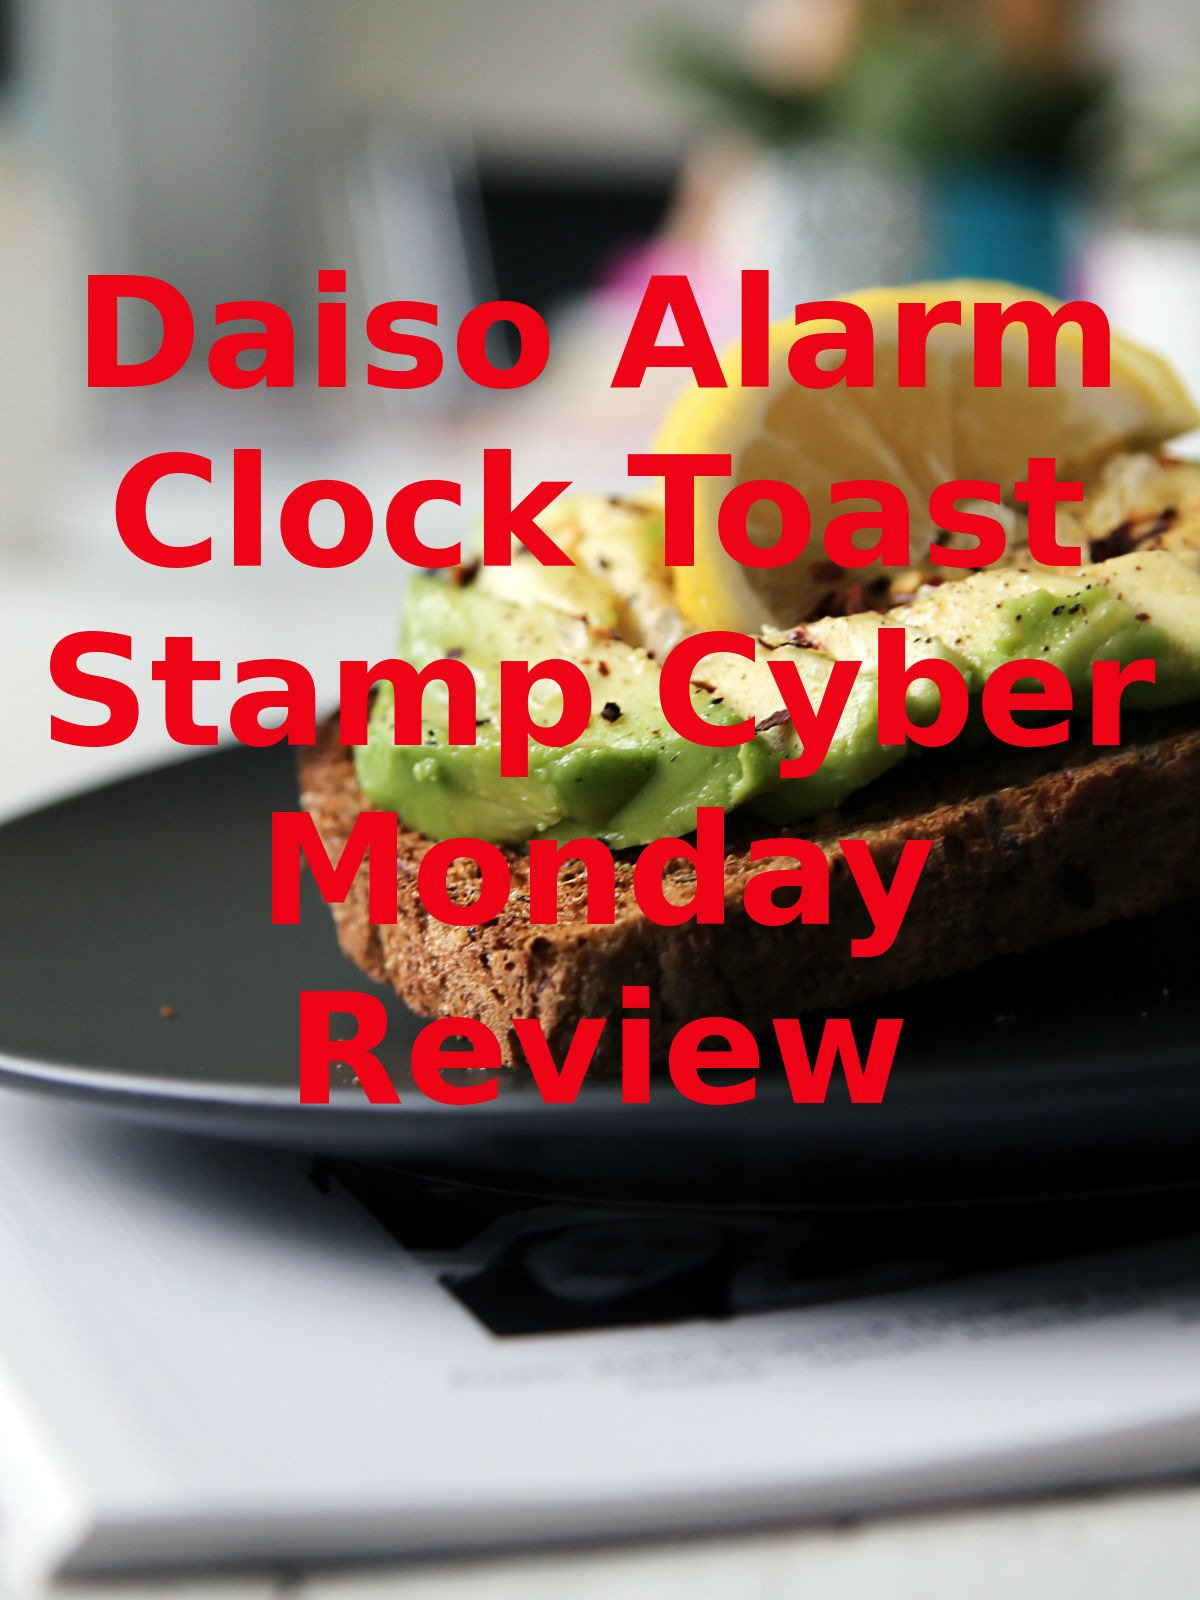 Review: Daiso Alarm Clock Toast Stamp Cyber Monday Review